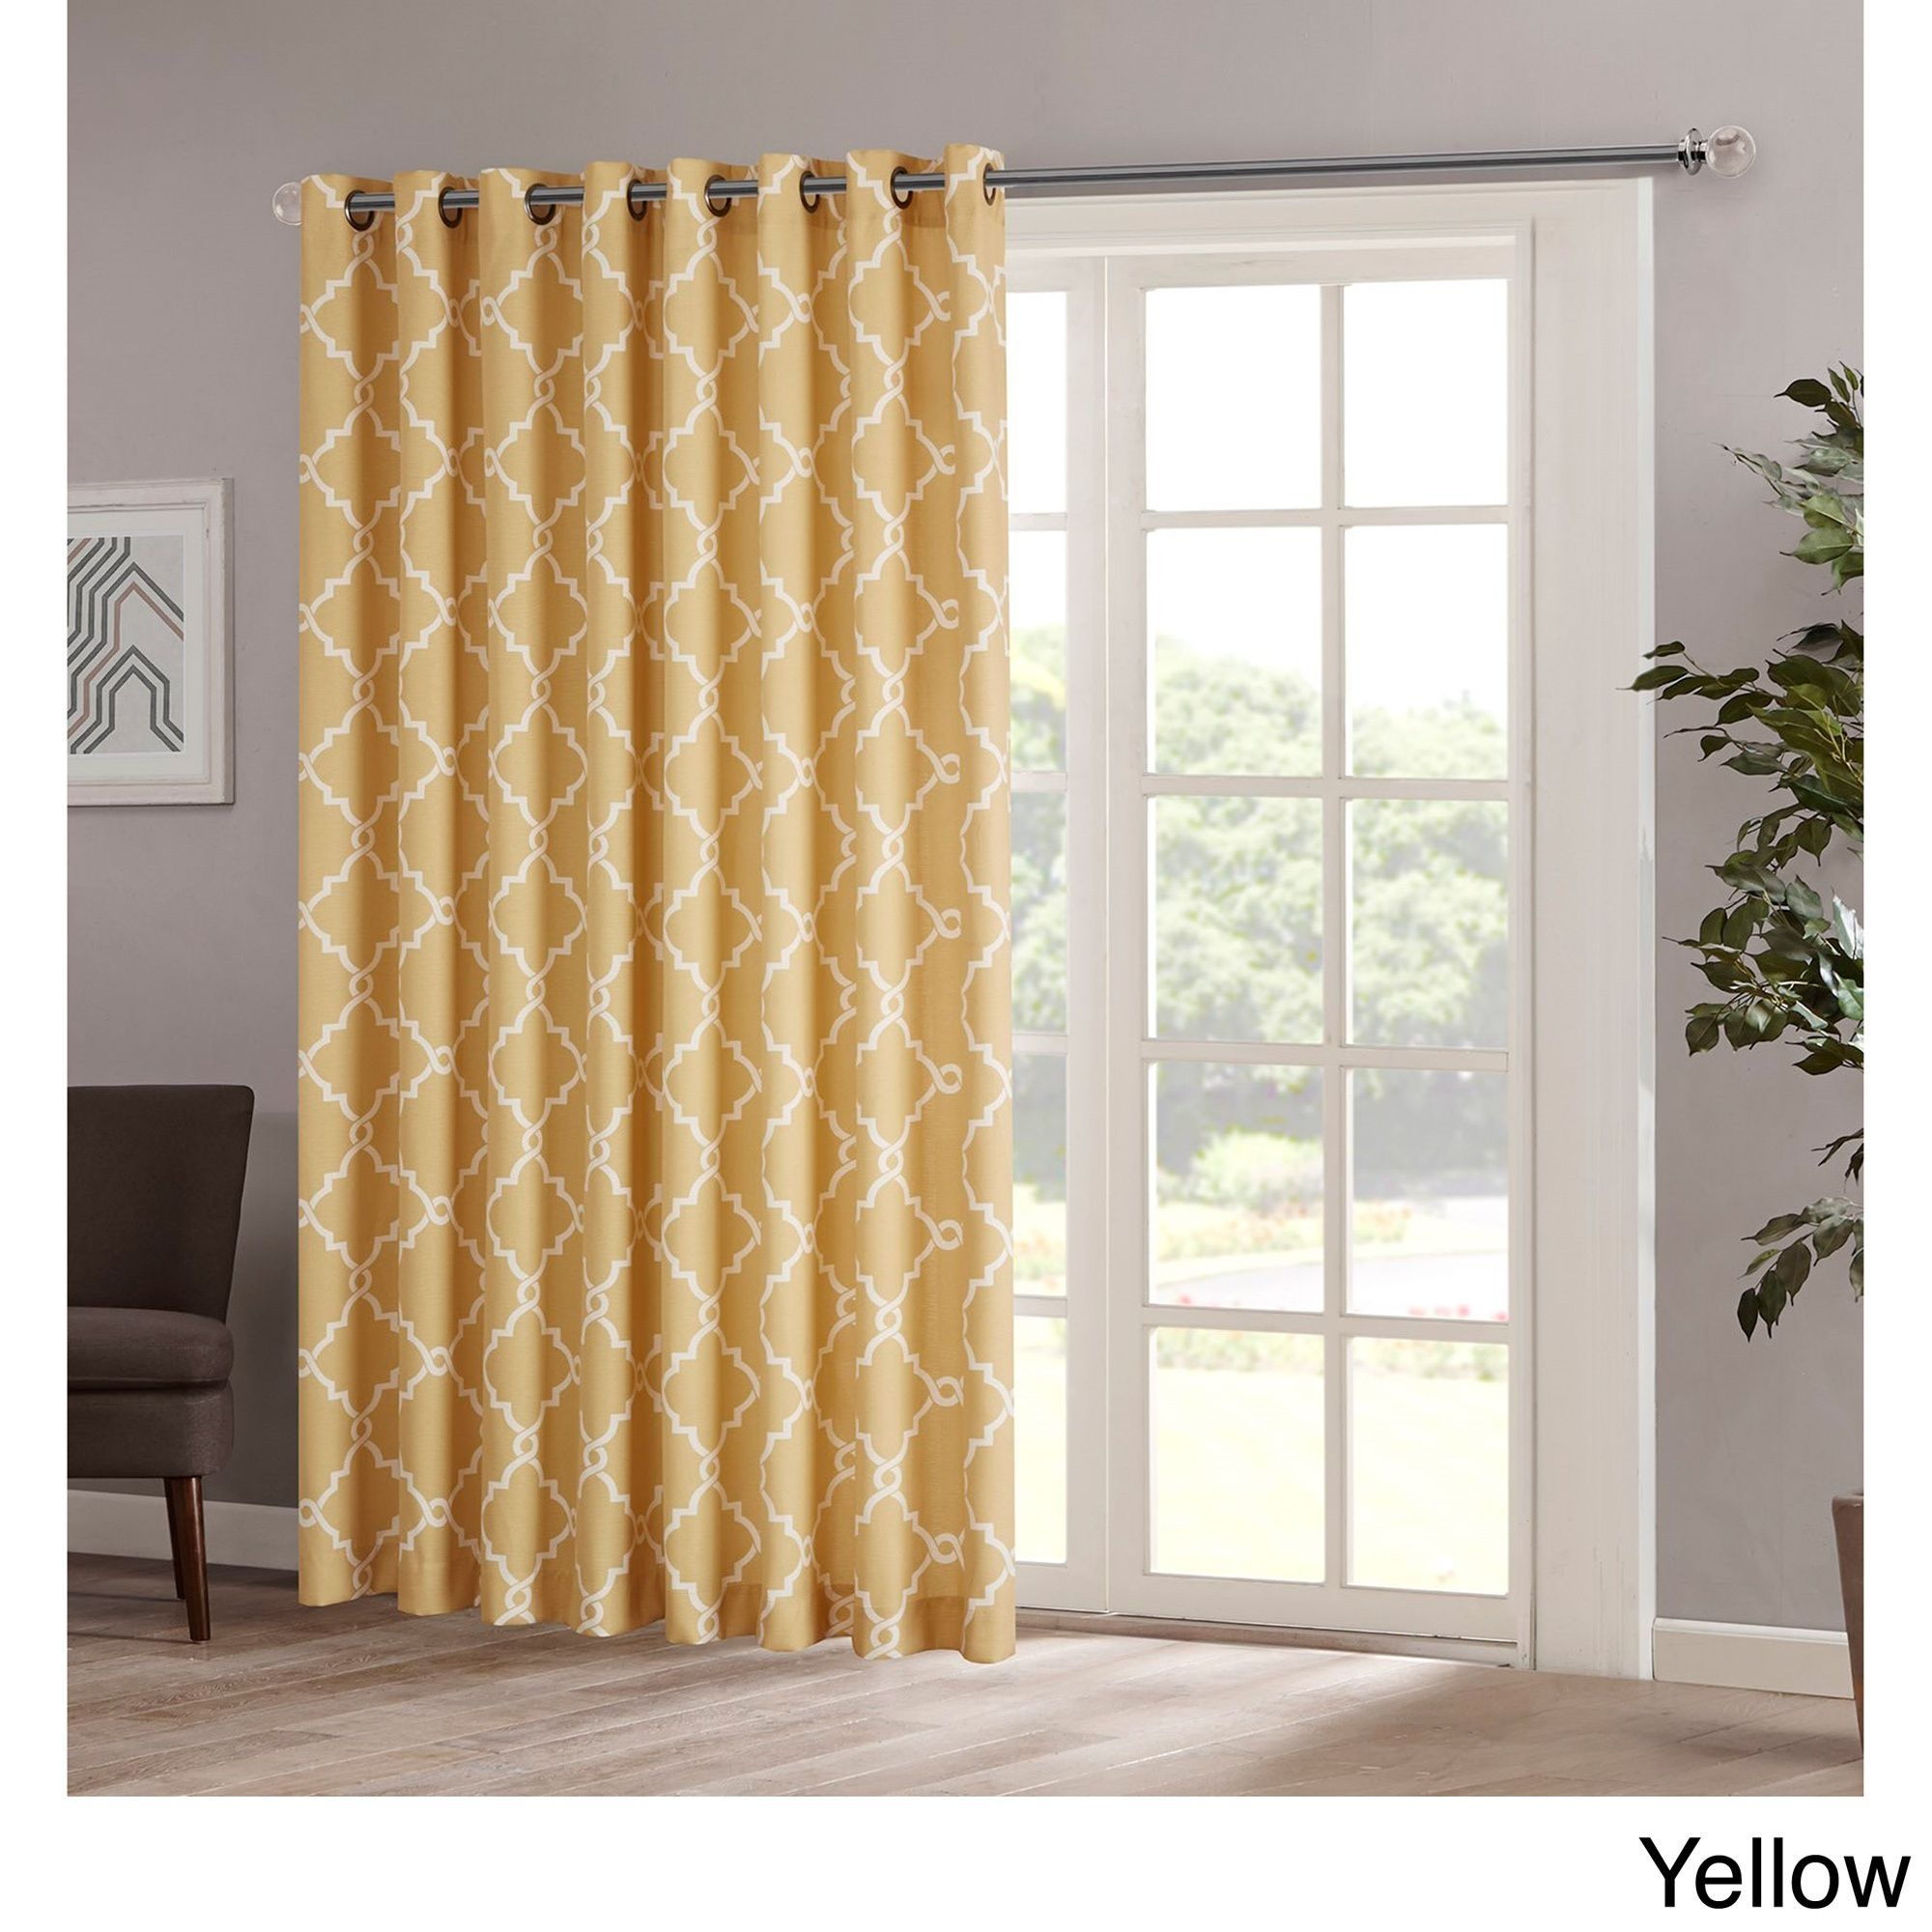 Sliding Glass Door Curtains You Ll Love In 2021 Visualhunt